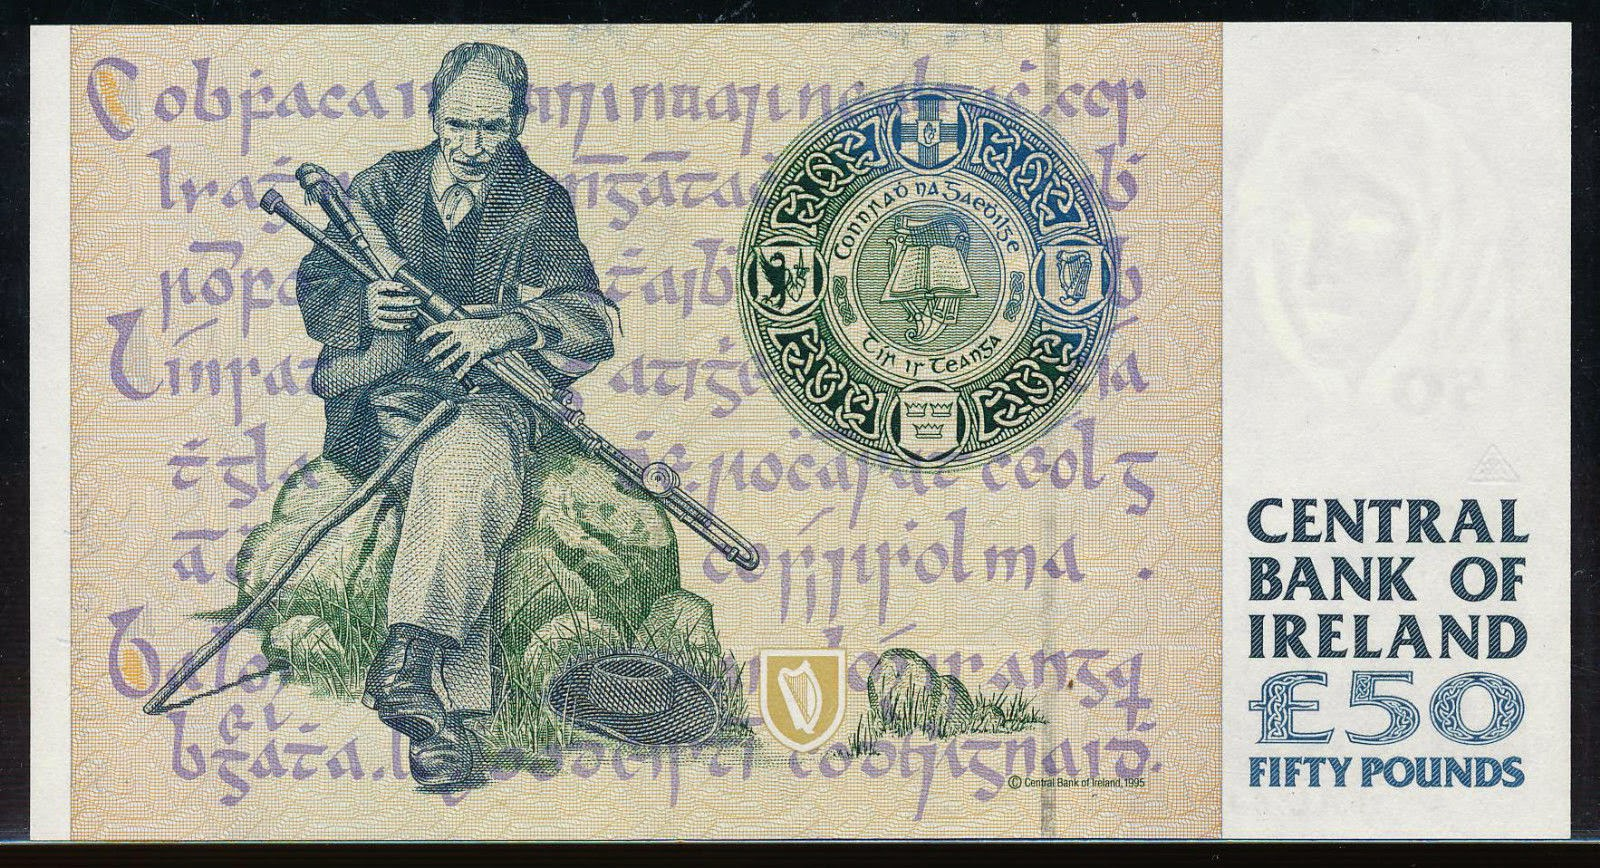 Ireland Fifty Pounds banknote